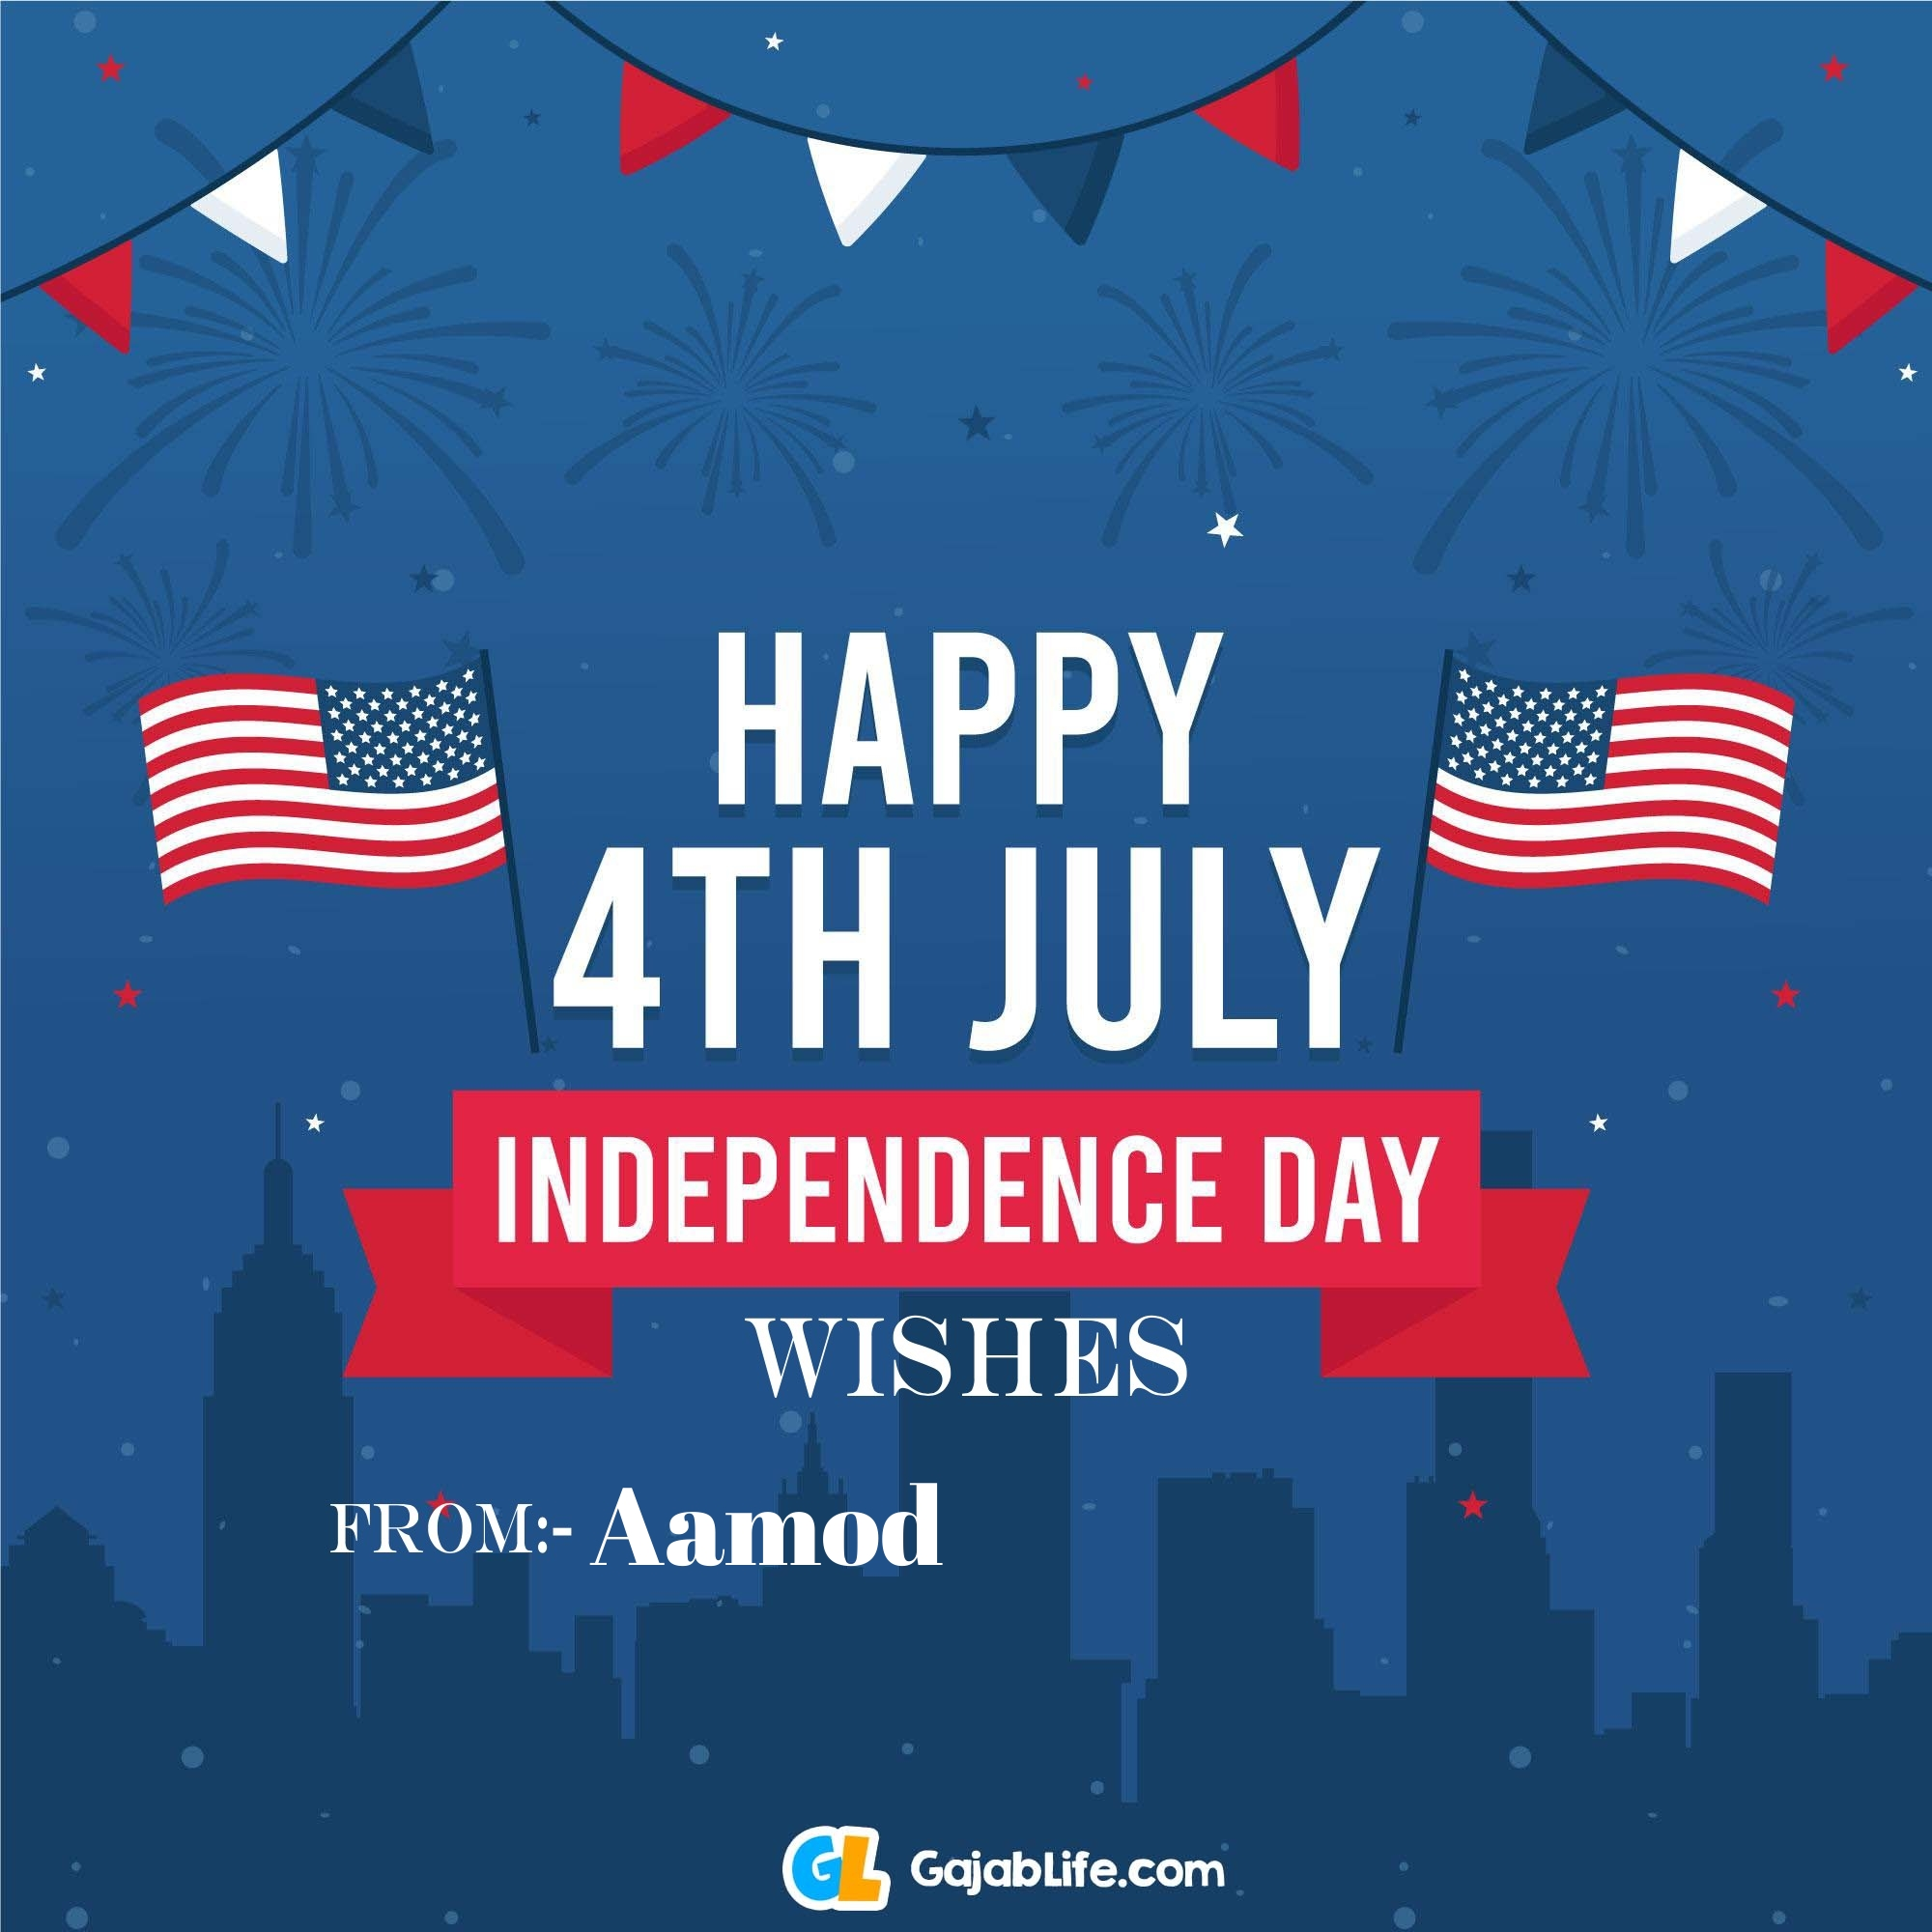 Aamod happy independence day united states of america images